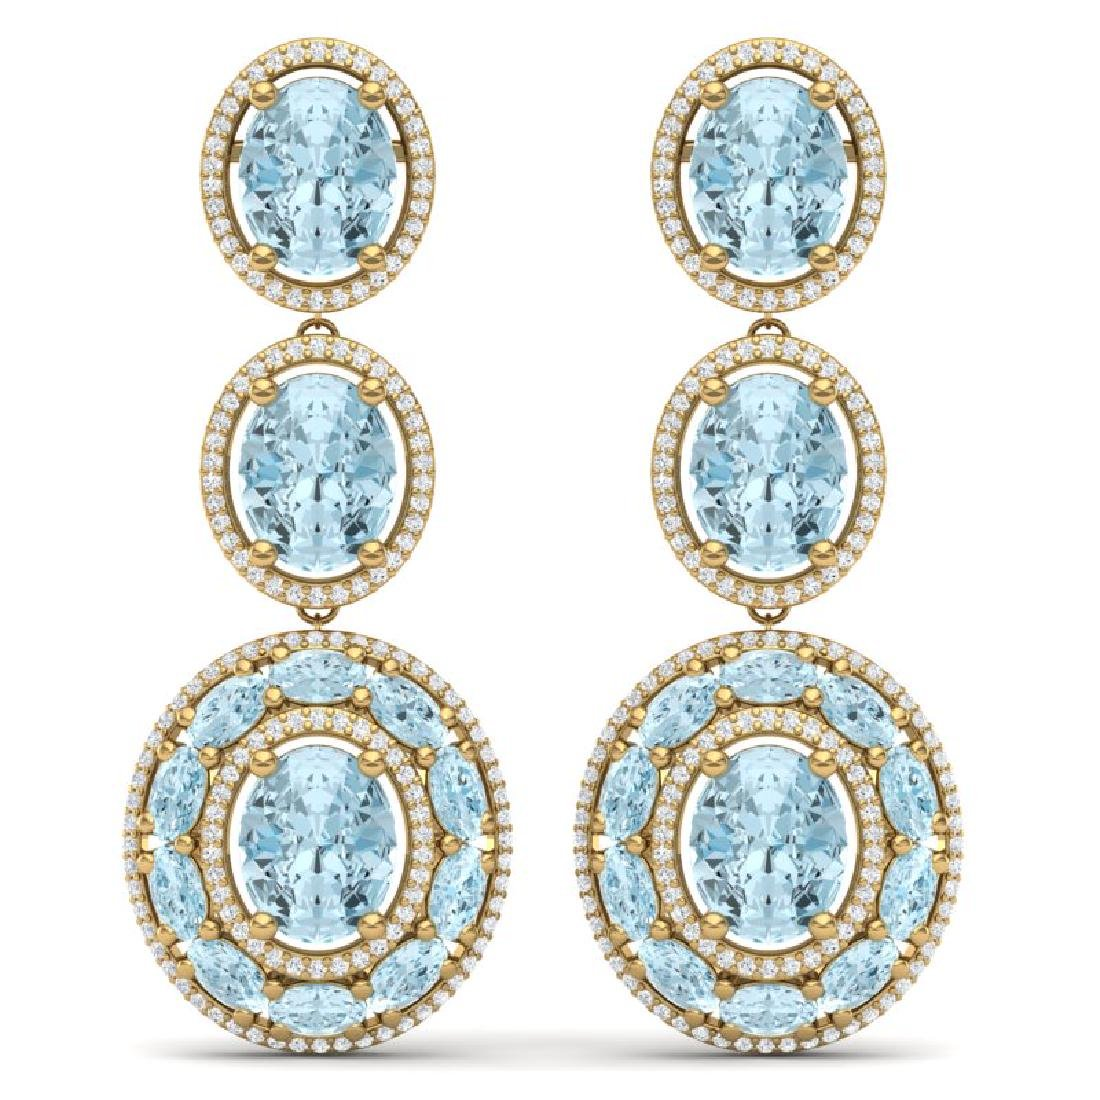 34.52 CTW Royalty Sky Topaz & VS Diamond Earrings 18K